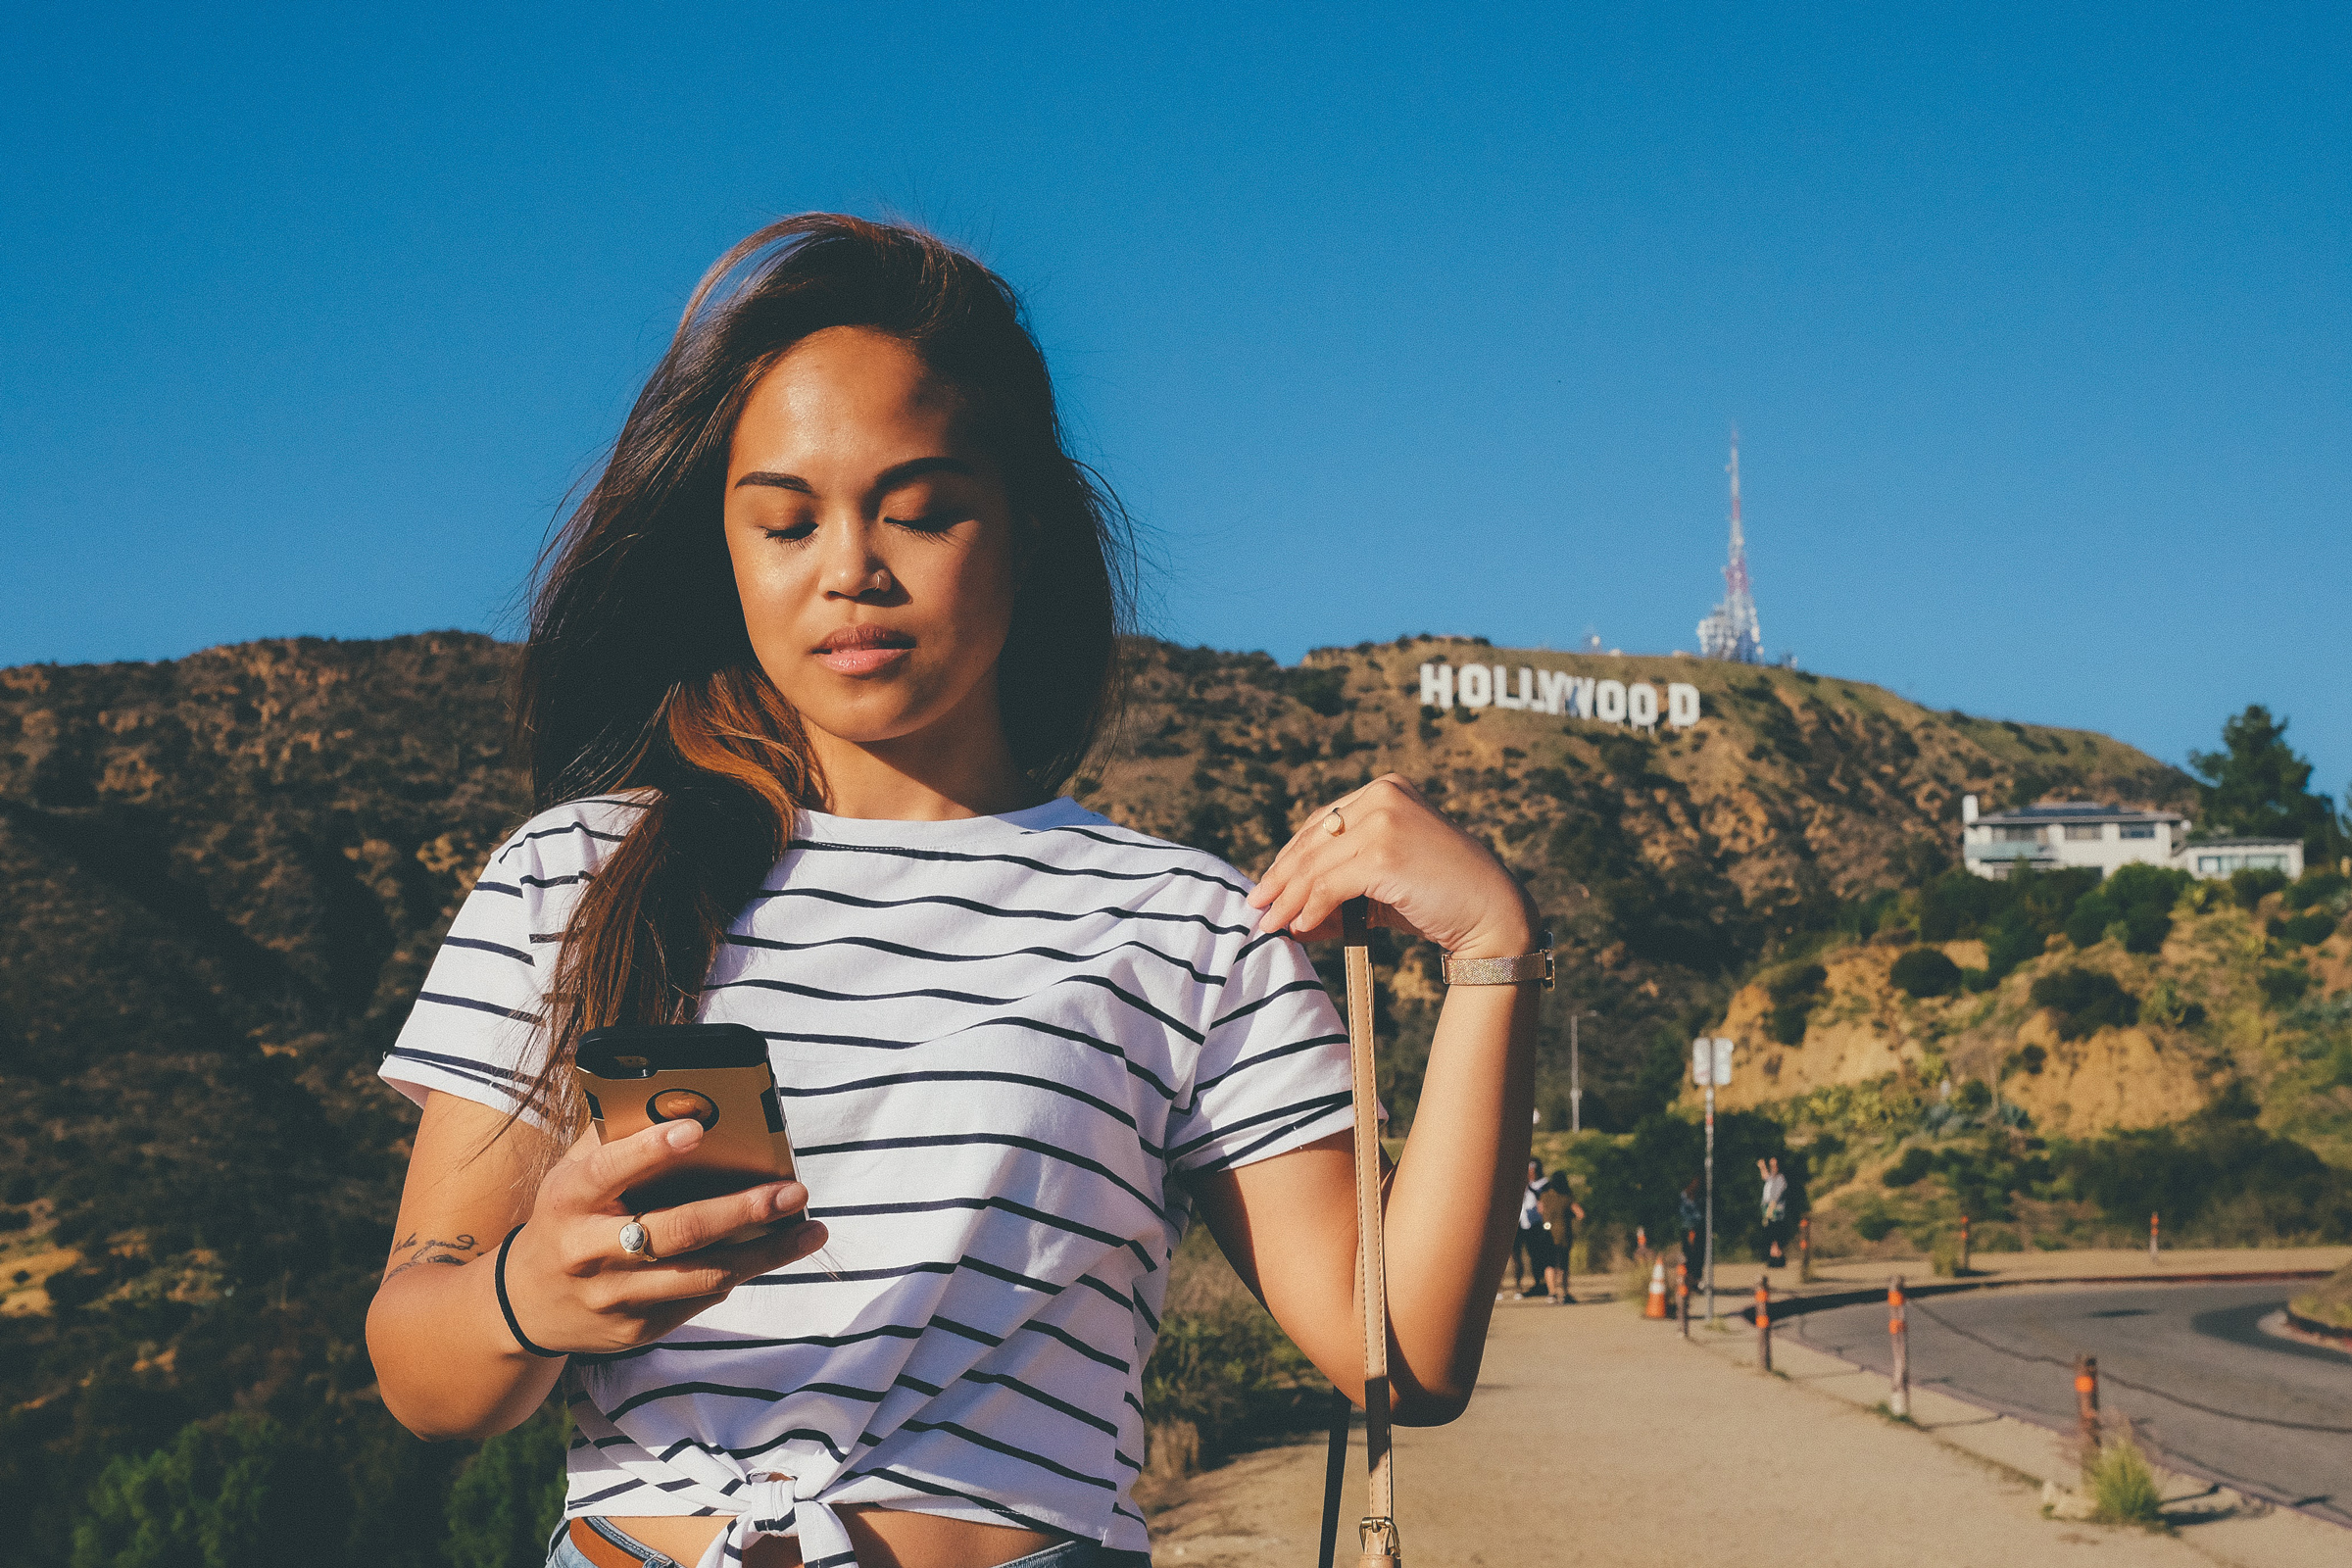 a woman of color with dark hair looks down at her phone, the Hollywood sign behind her